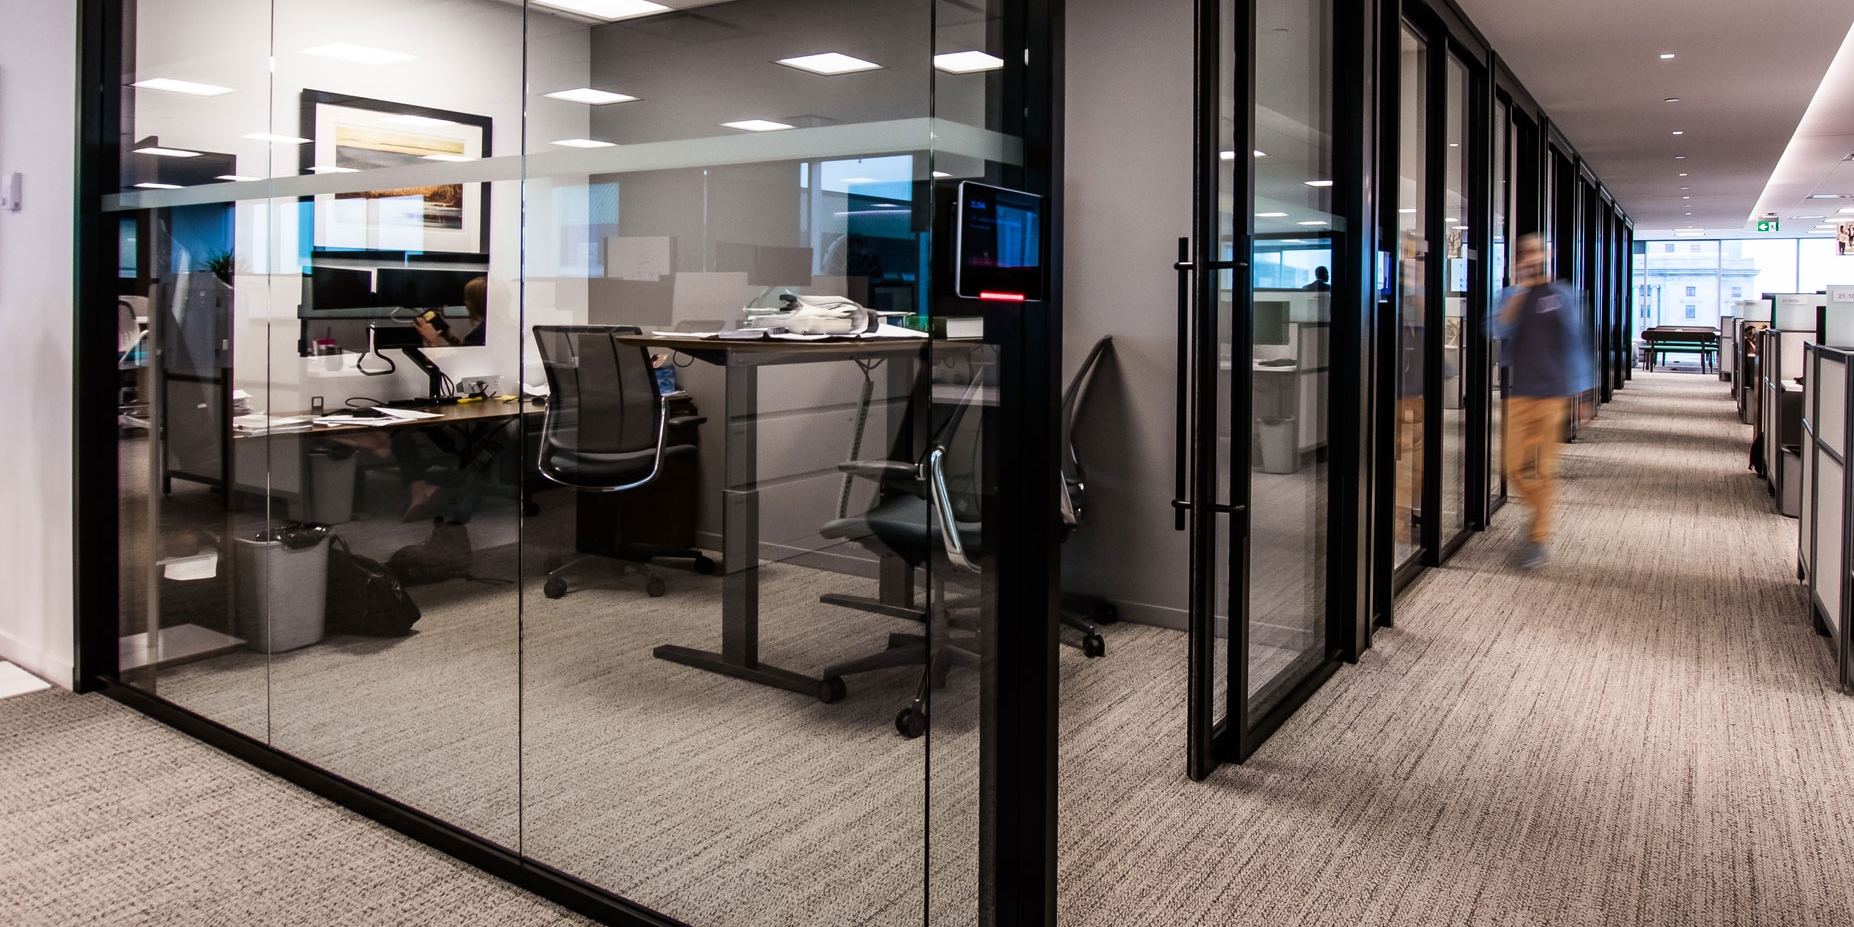 Glass walls surrounding office areas